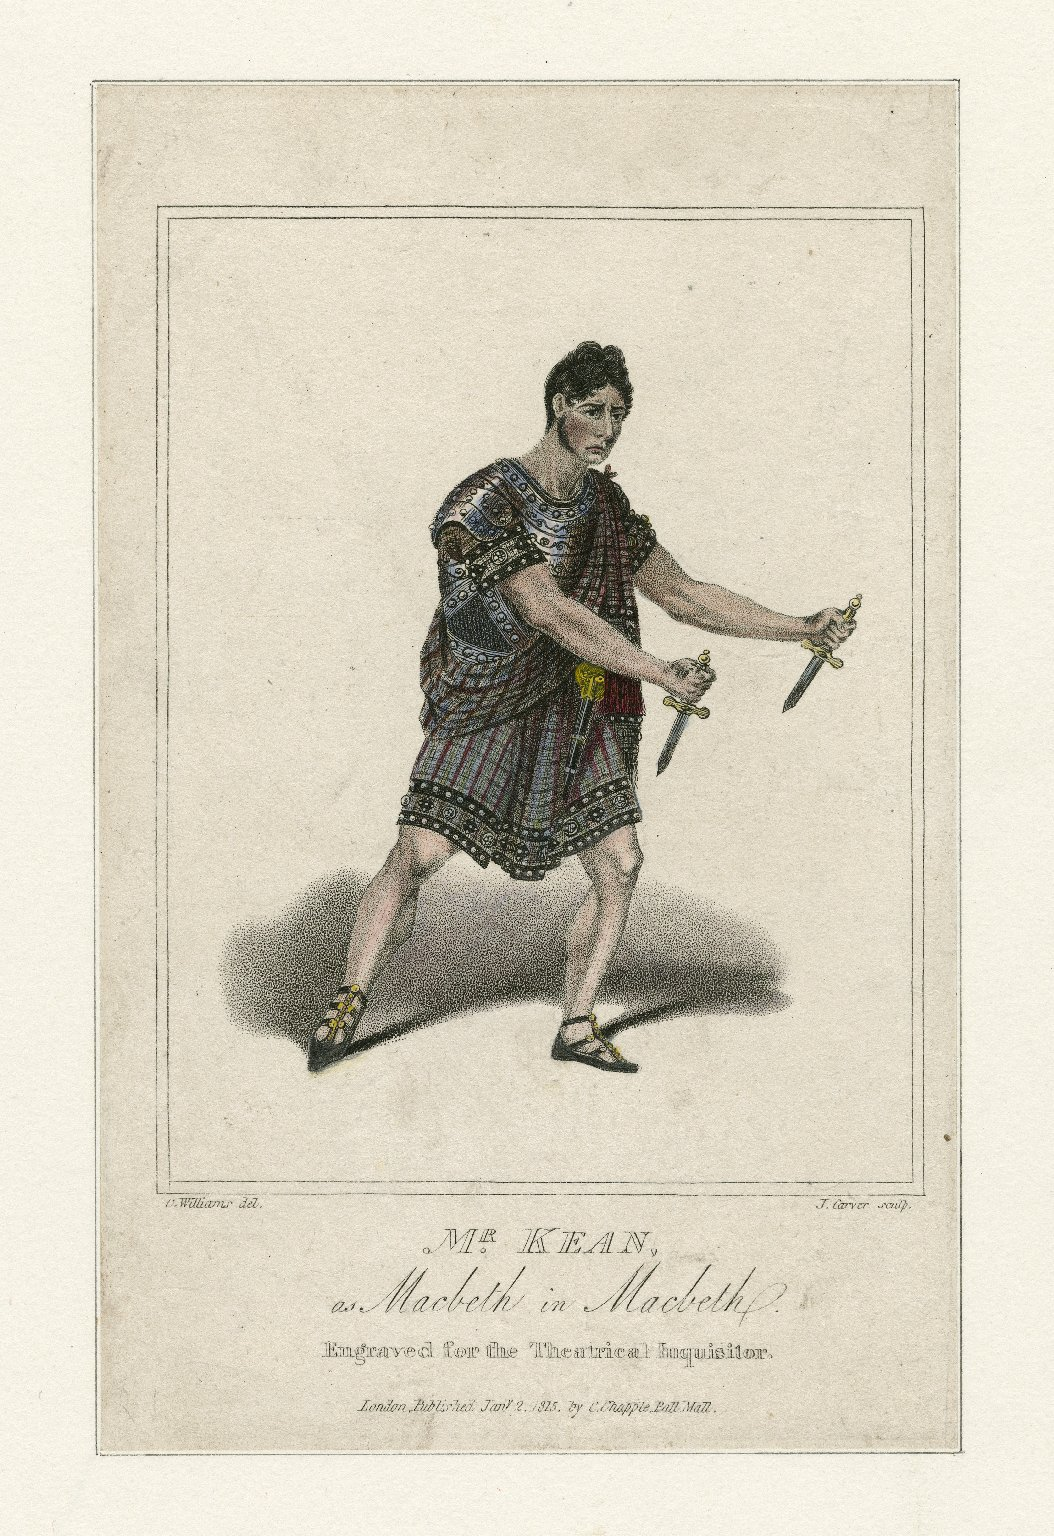 <b>Macbeth, 1815</b>     	</br>Actor Edmund Kean as Macbeth, January 1815</br><br/><b>Source: </b><i>J. Carver, Mr. Kean, as Macbeth in Macbeth (Call number: ART File K24.4 no.92), January 2, 1815, Folger Digital Image Collection, University of Cincinnati Libraries Digital Collections, University of Cincinnati, http://digproj.libraries.uc.edu:8180/luna/servlet/s/tnjep4</i>